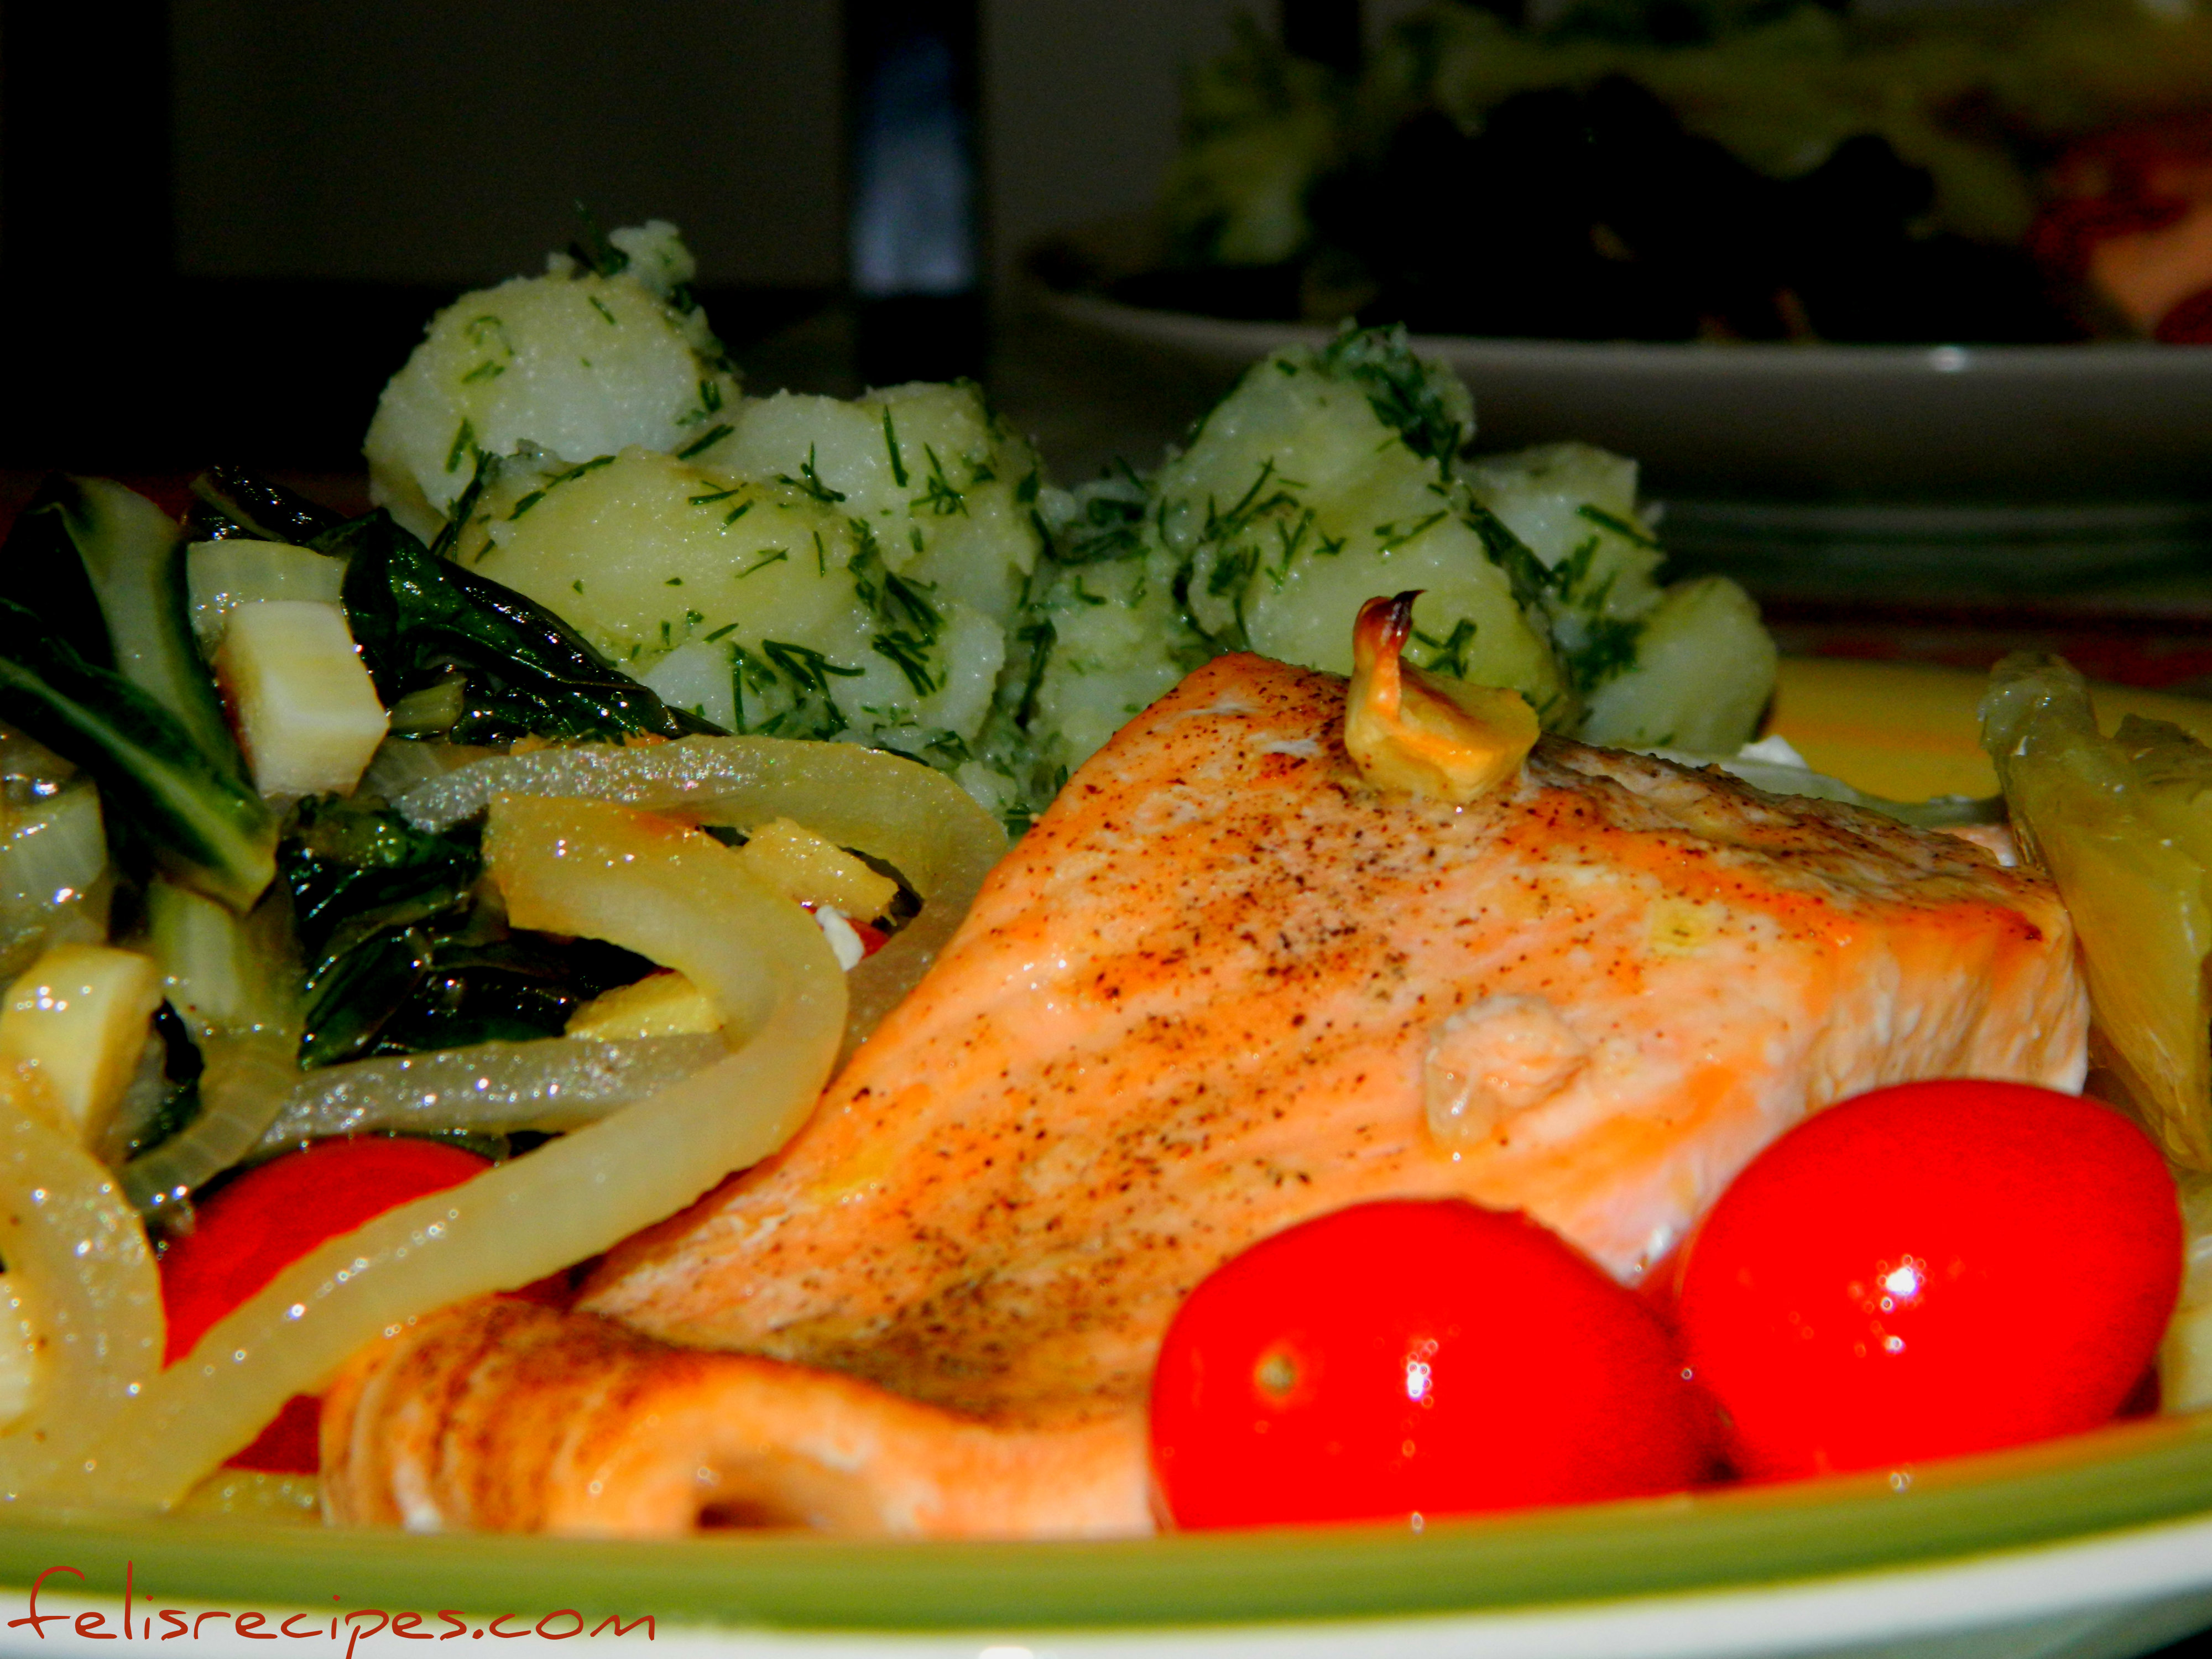 salmon with cherry tomatoes and potatoe salad.jpg